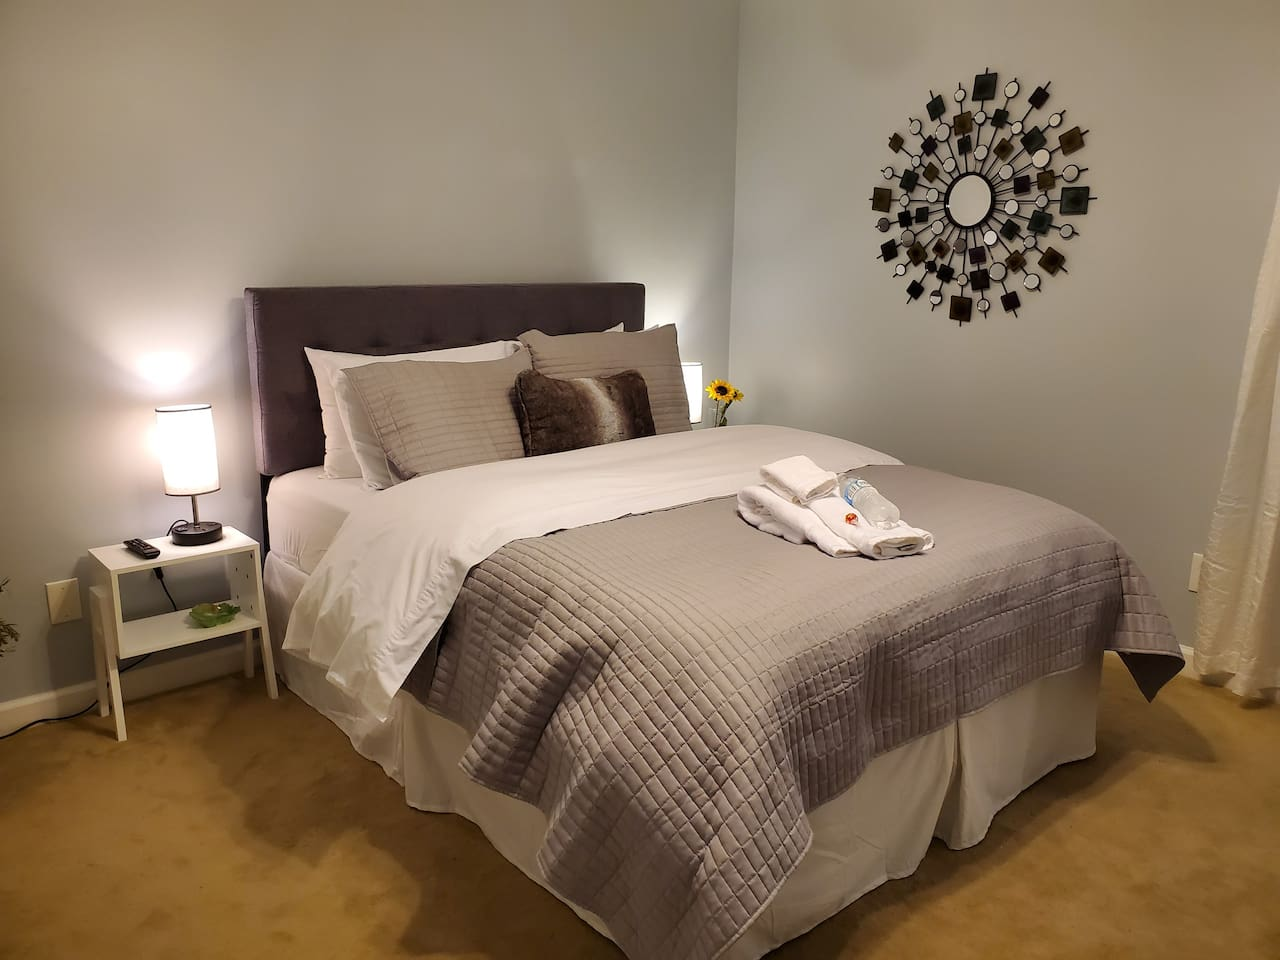 Relax in your newly remodeled room with pillow topped queen bed and plush-down comforter. Side tables feature charging ports and outlets.